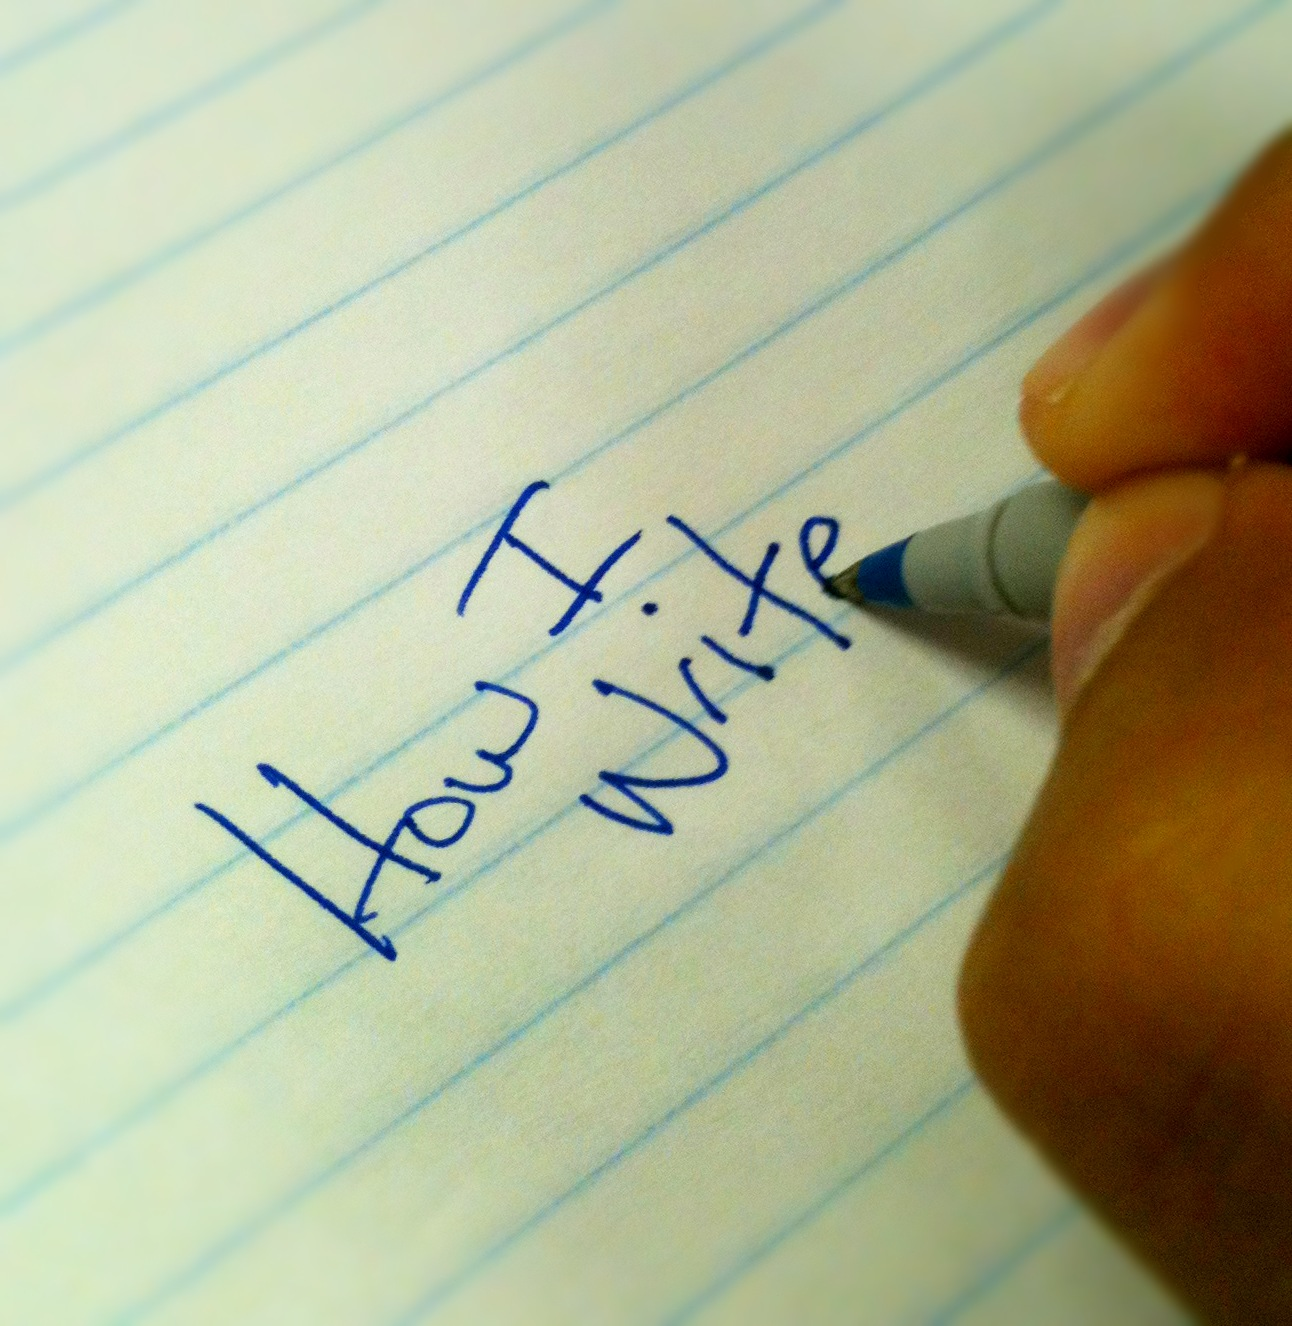 Help write an essay online your own